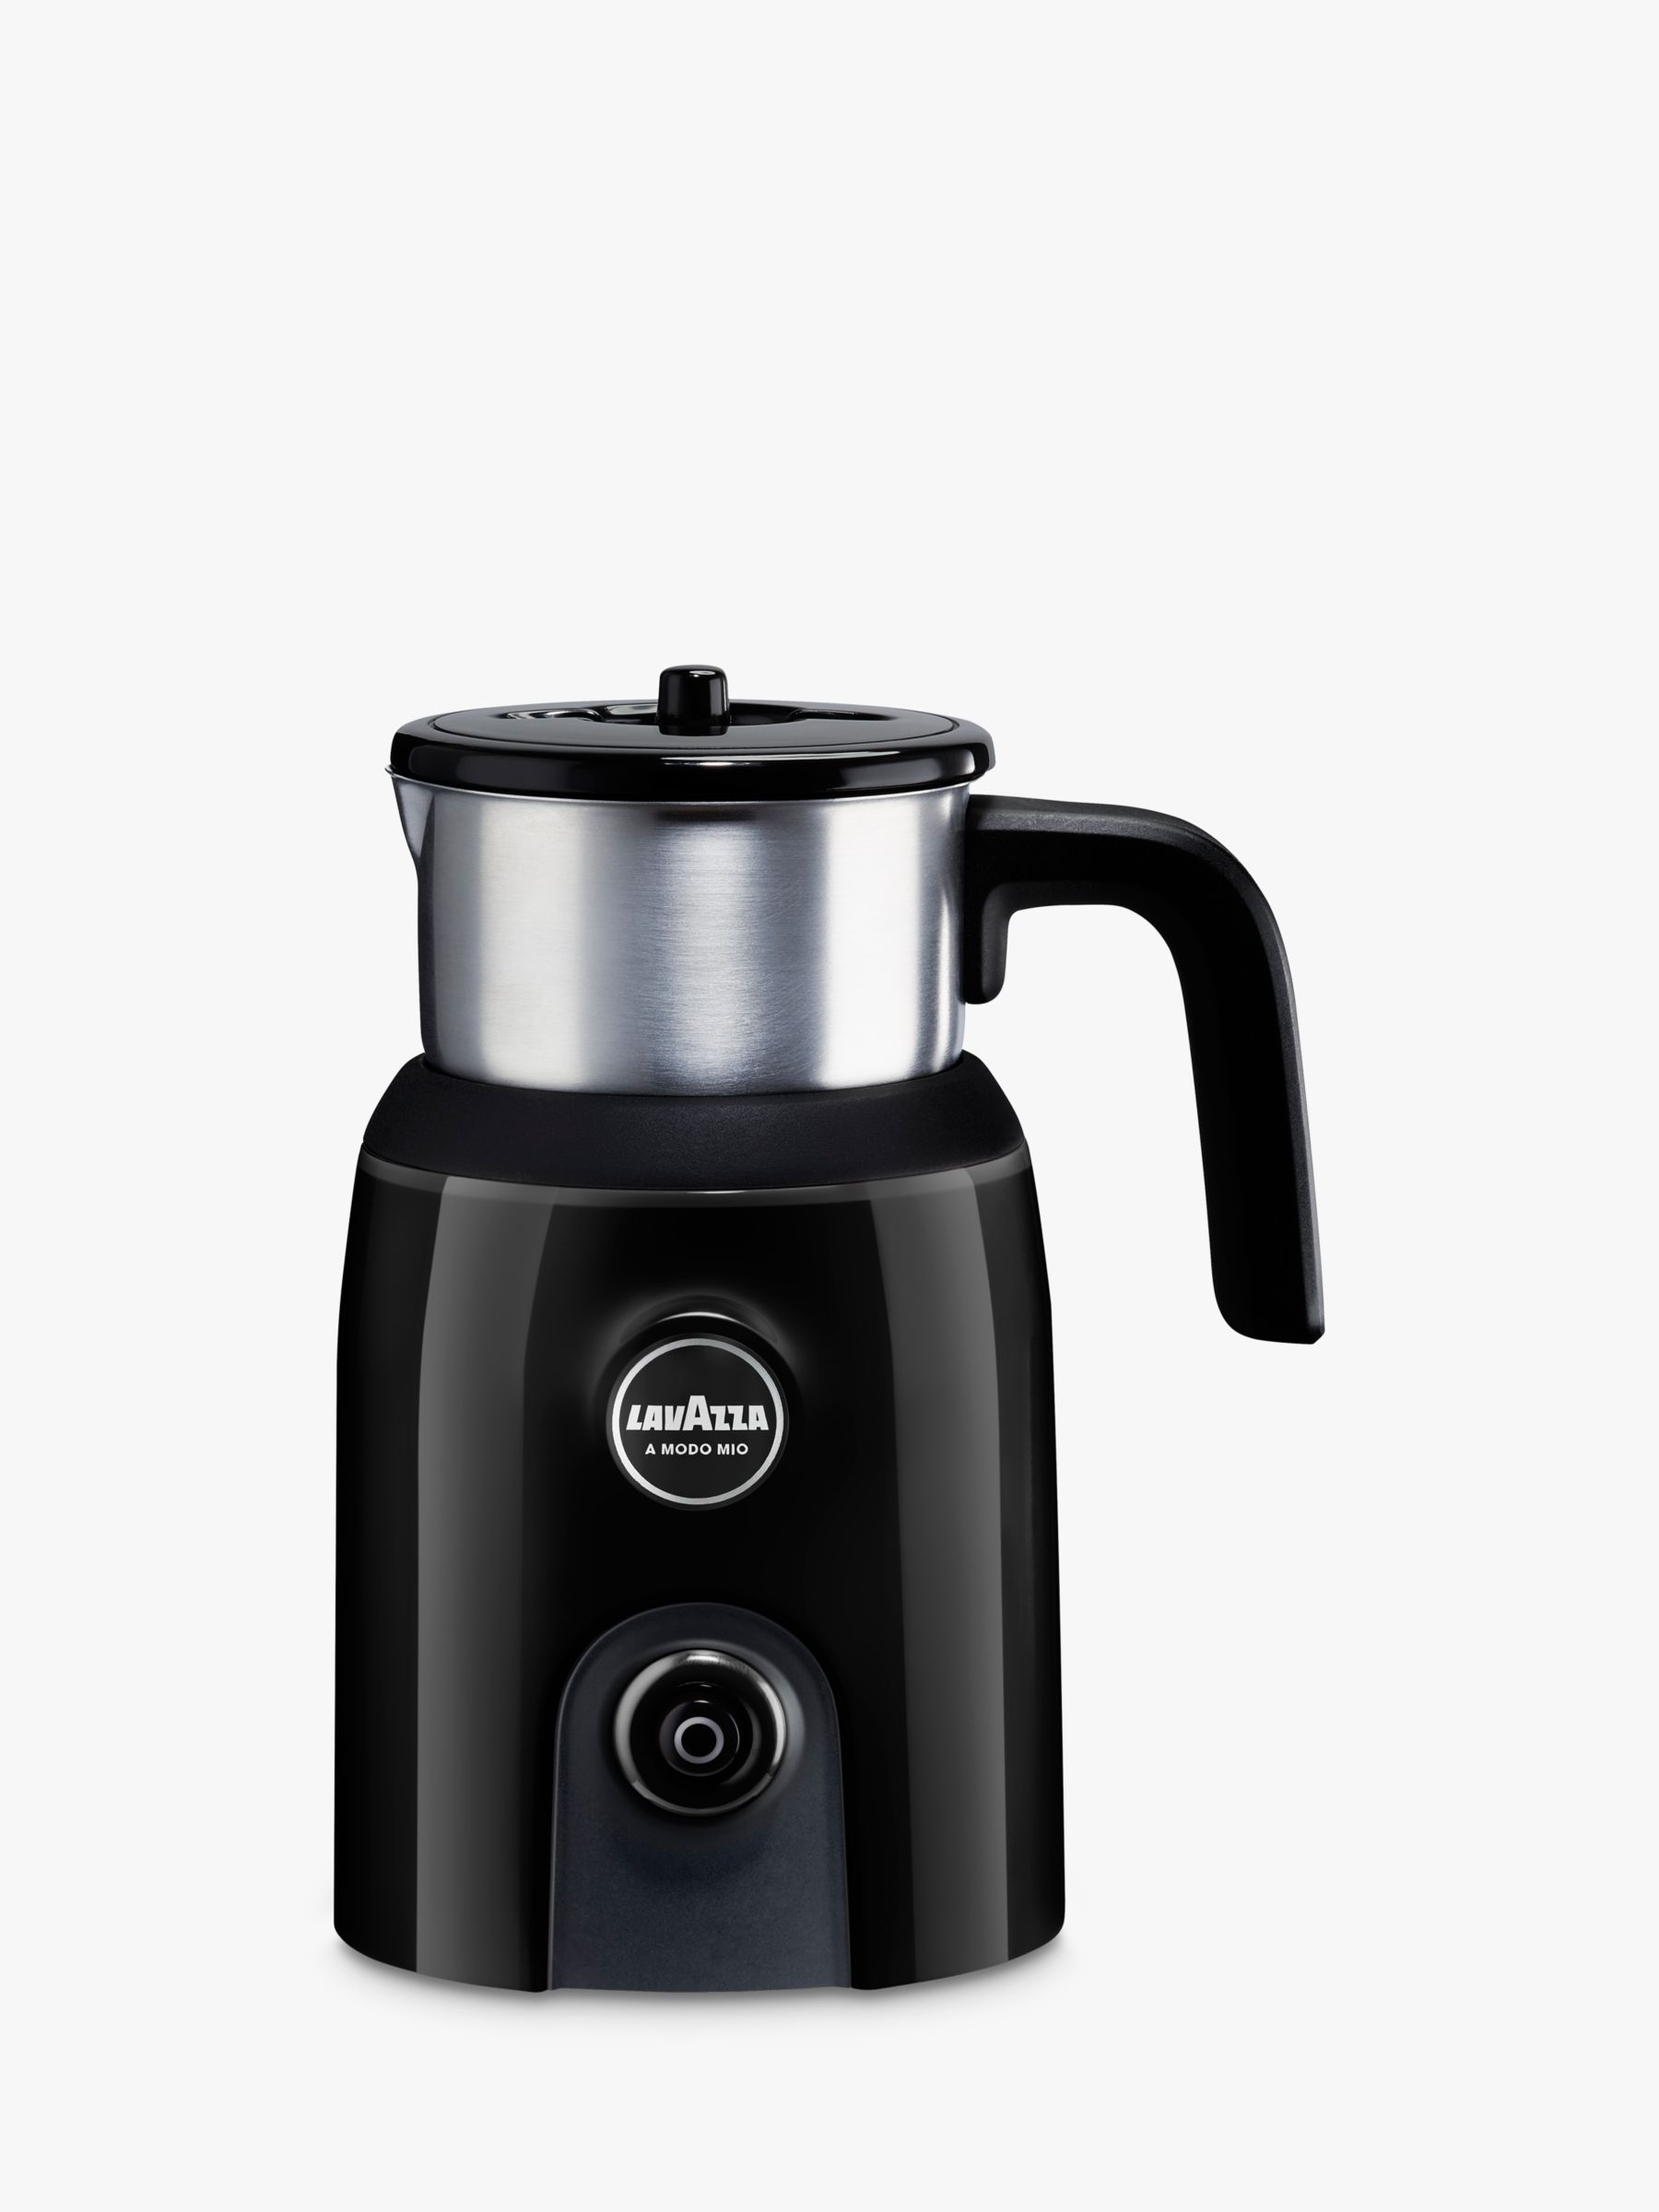 Lavazza MilkUp Milk Frother Espresso coffee machine